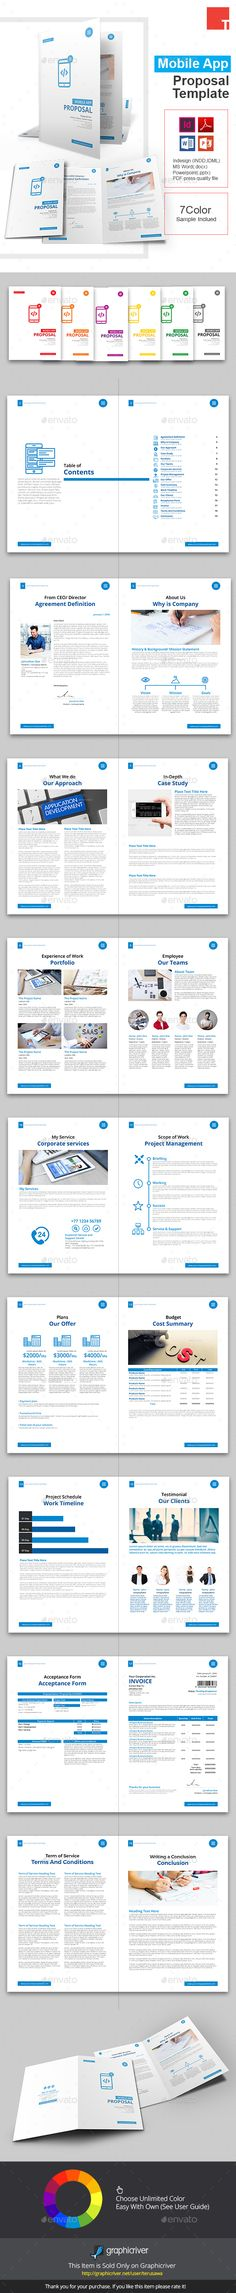 Proposal Proposal templates, Proposals and Font logo - proposal template in word